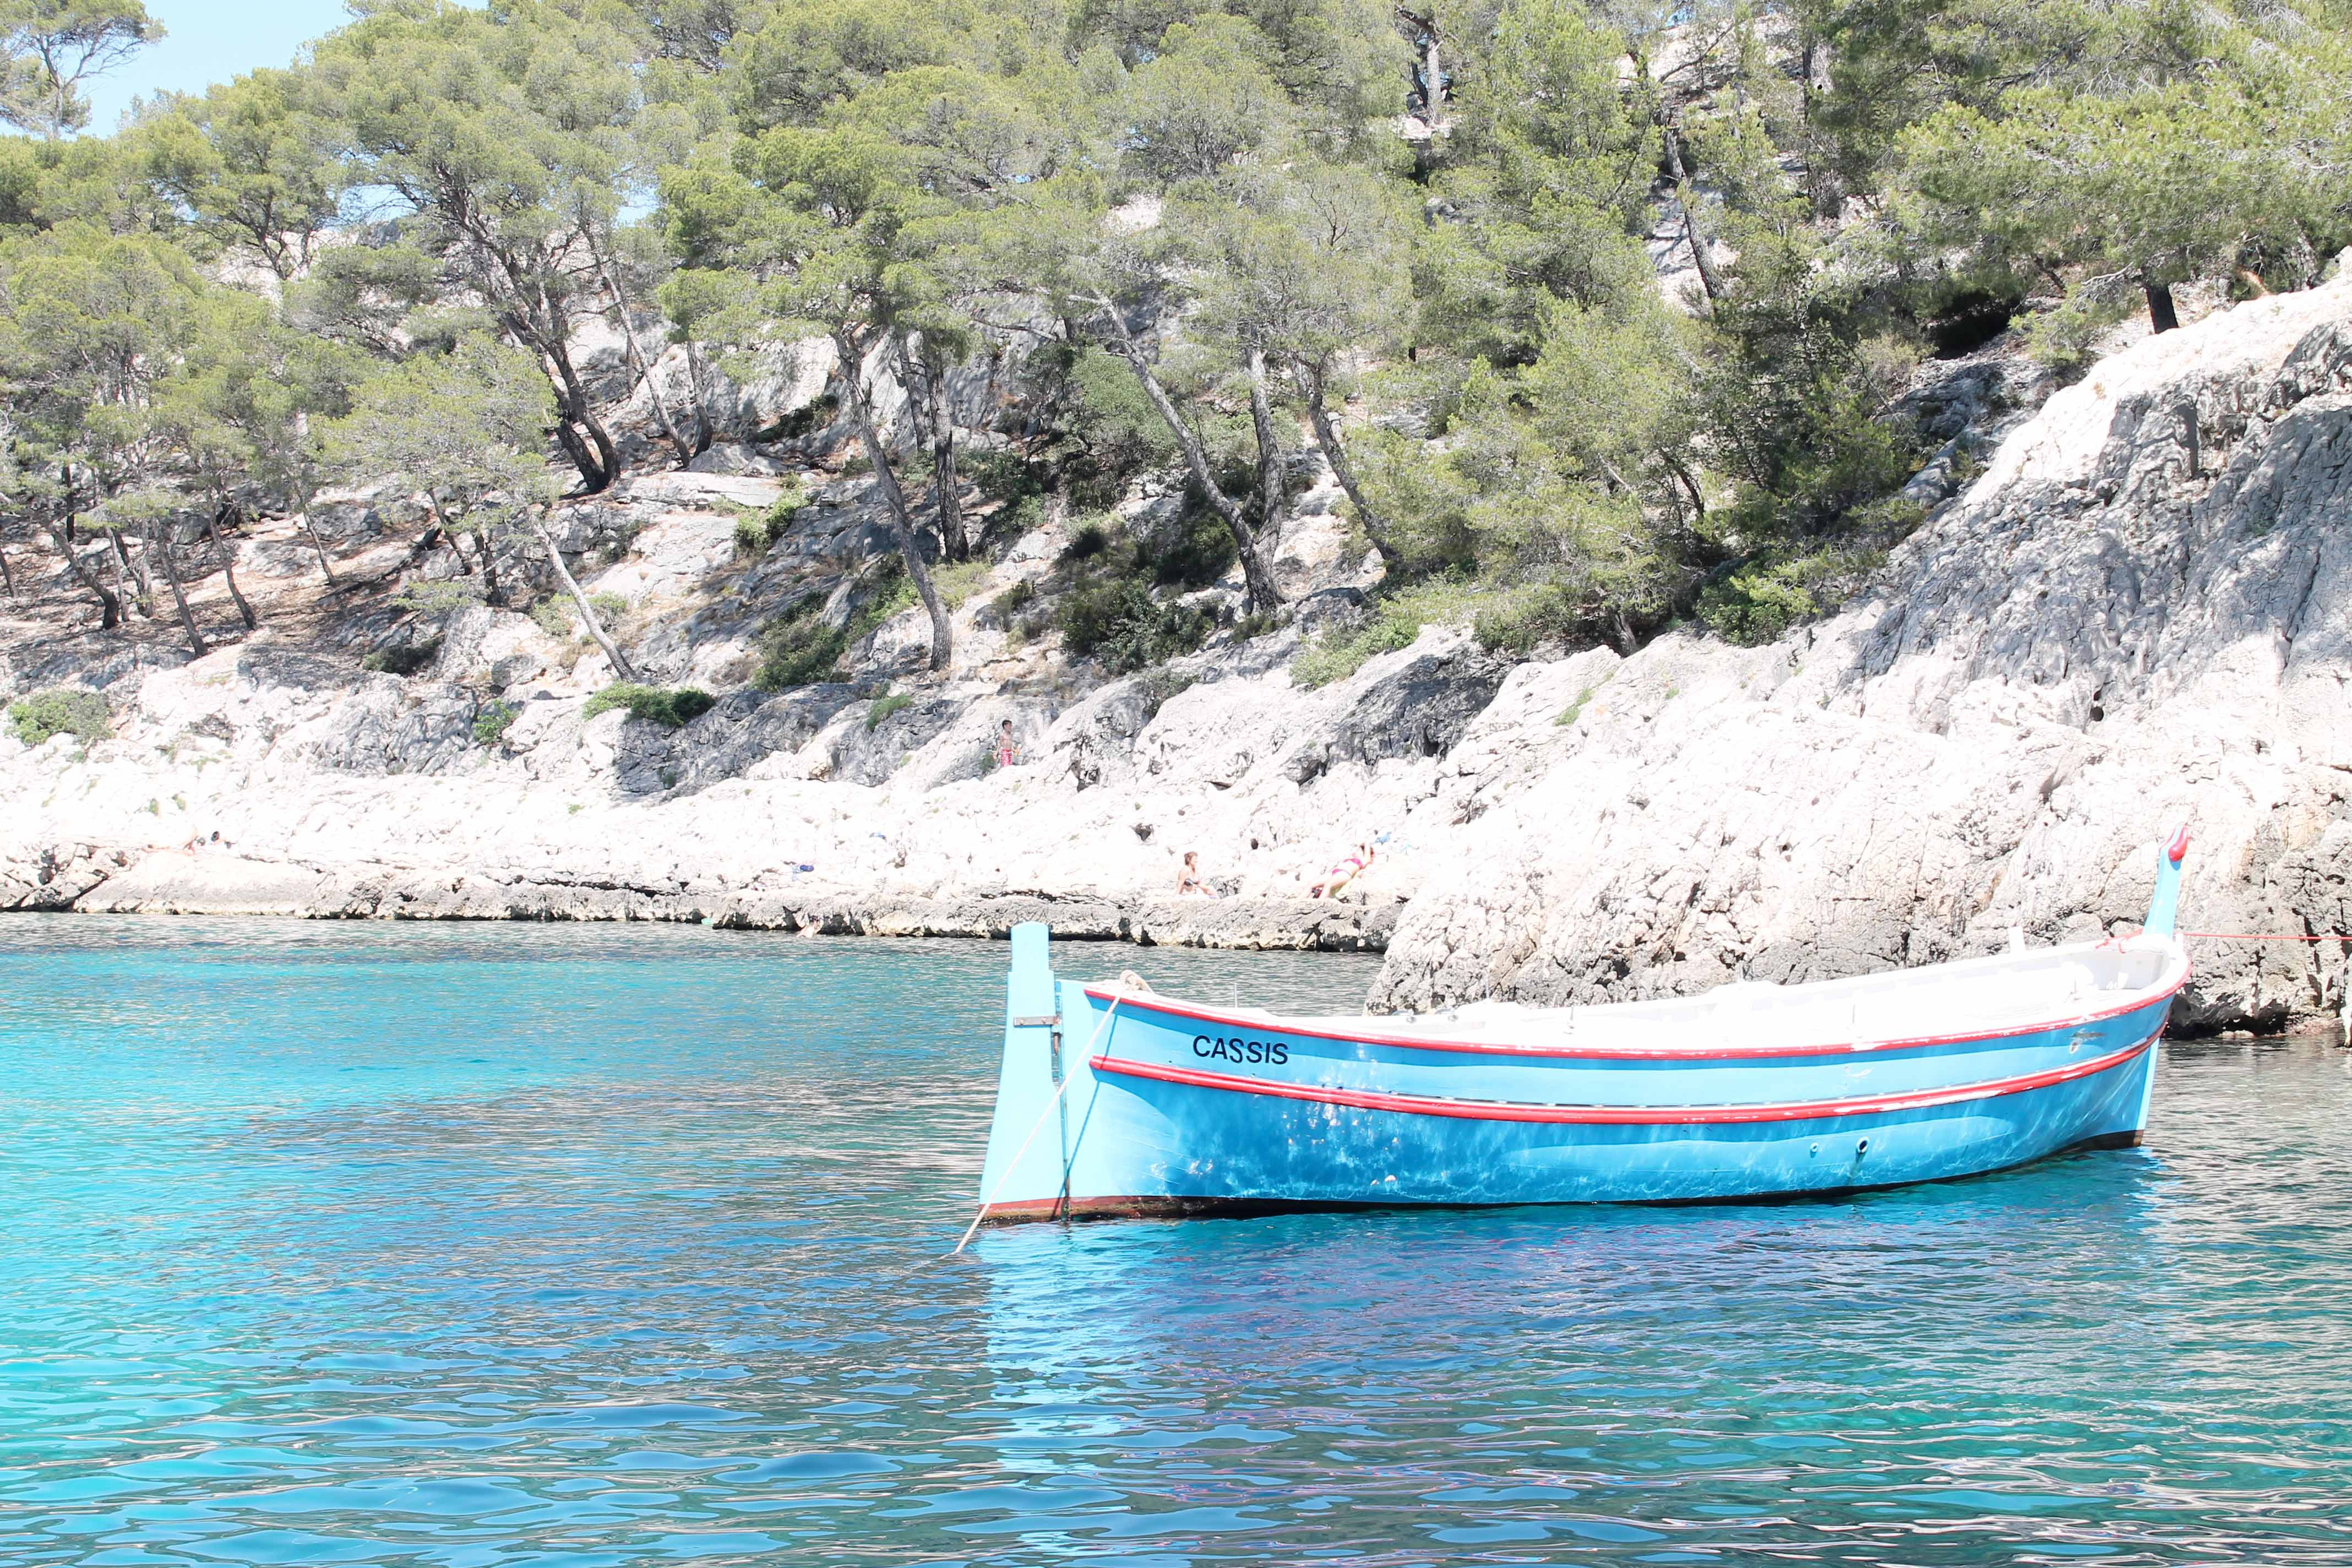 Wine and sailboat, fisherman boat in the calanques